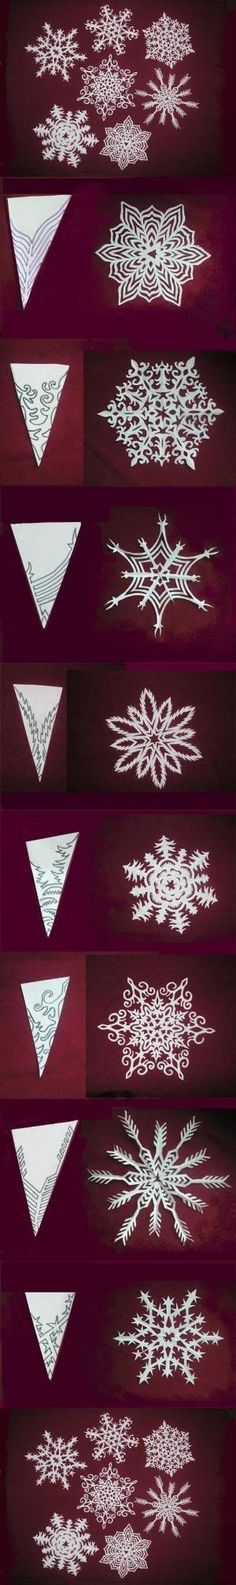 How to make beautiful Snowflakes Paper craft DIY tutorial instructions, How to, how to do, diy instructions, crafts, do it yourself, diy web by Mary Smith fSesz